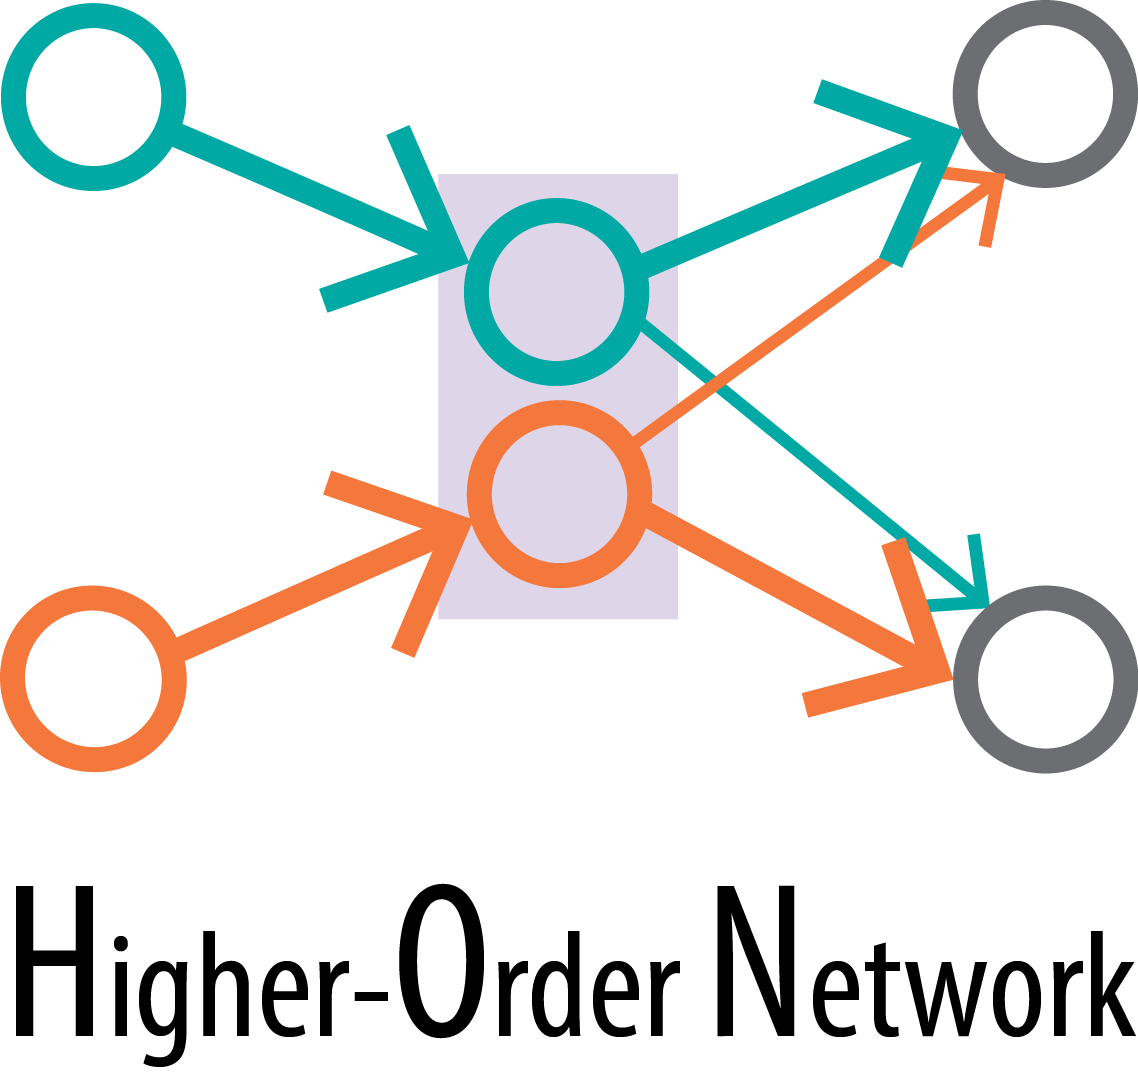 Higher-order network